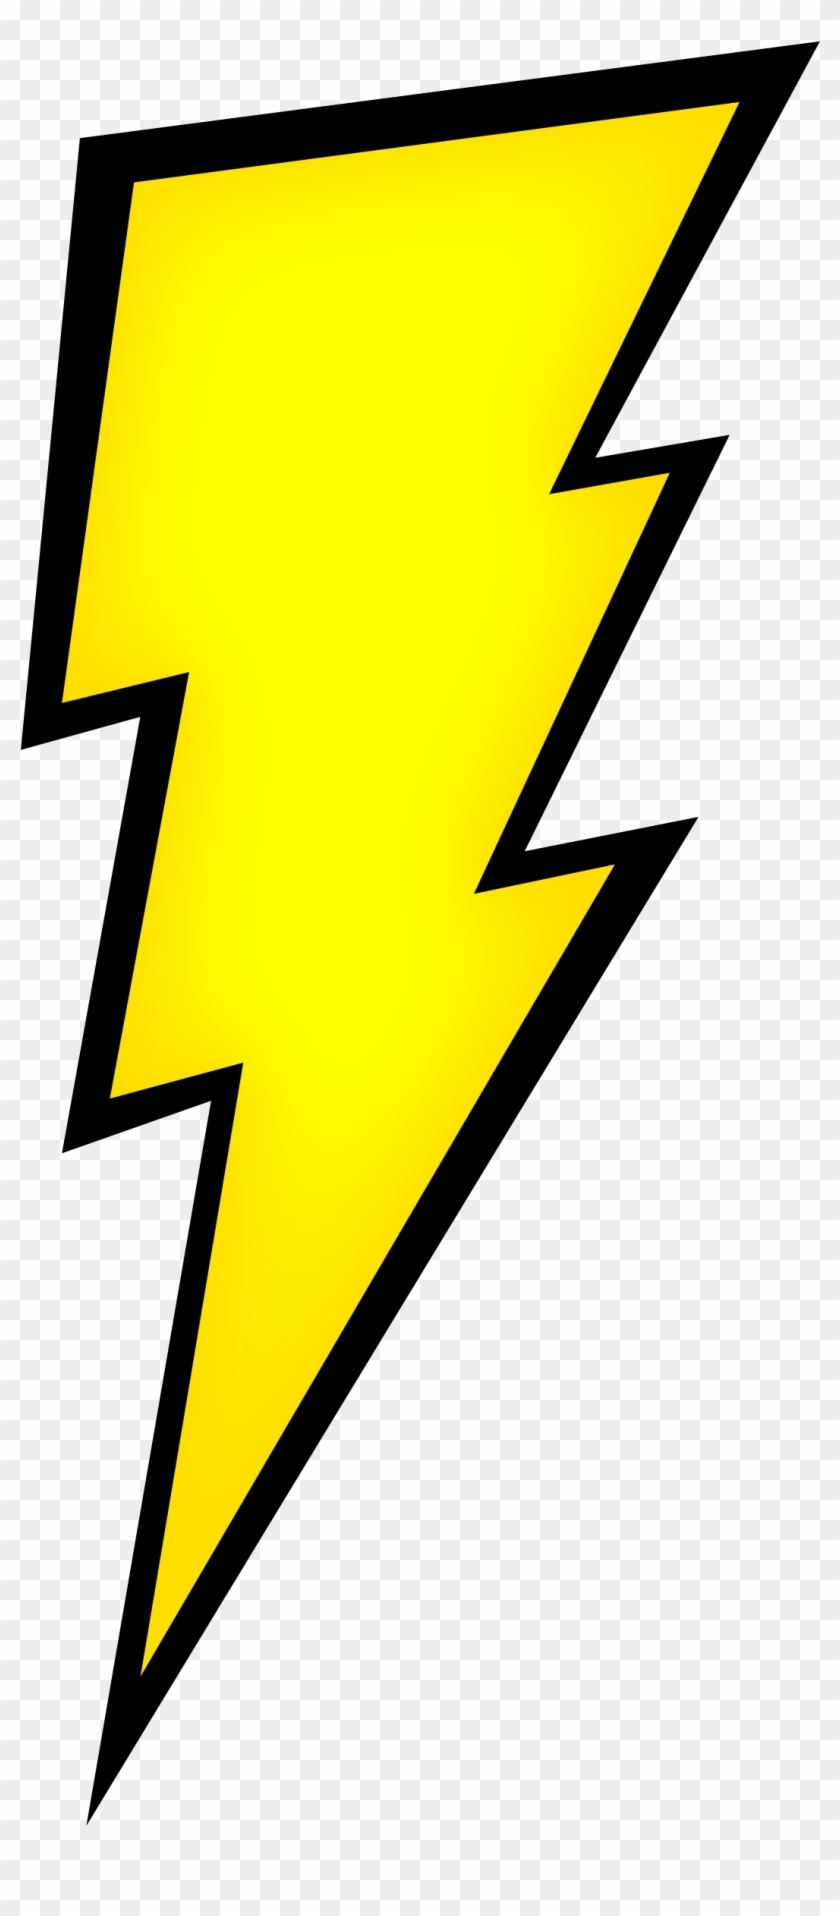 Free Icons Png - Lightning Bolt Drawing Easy Clipart #166334